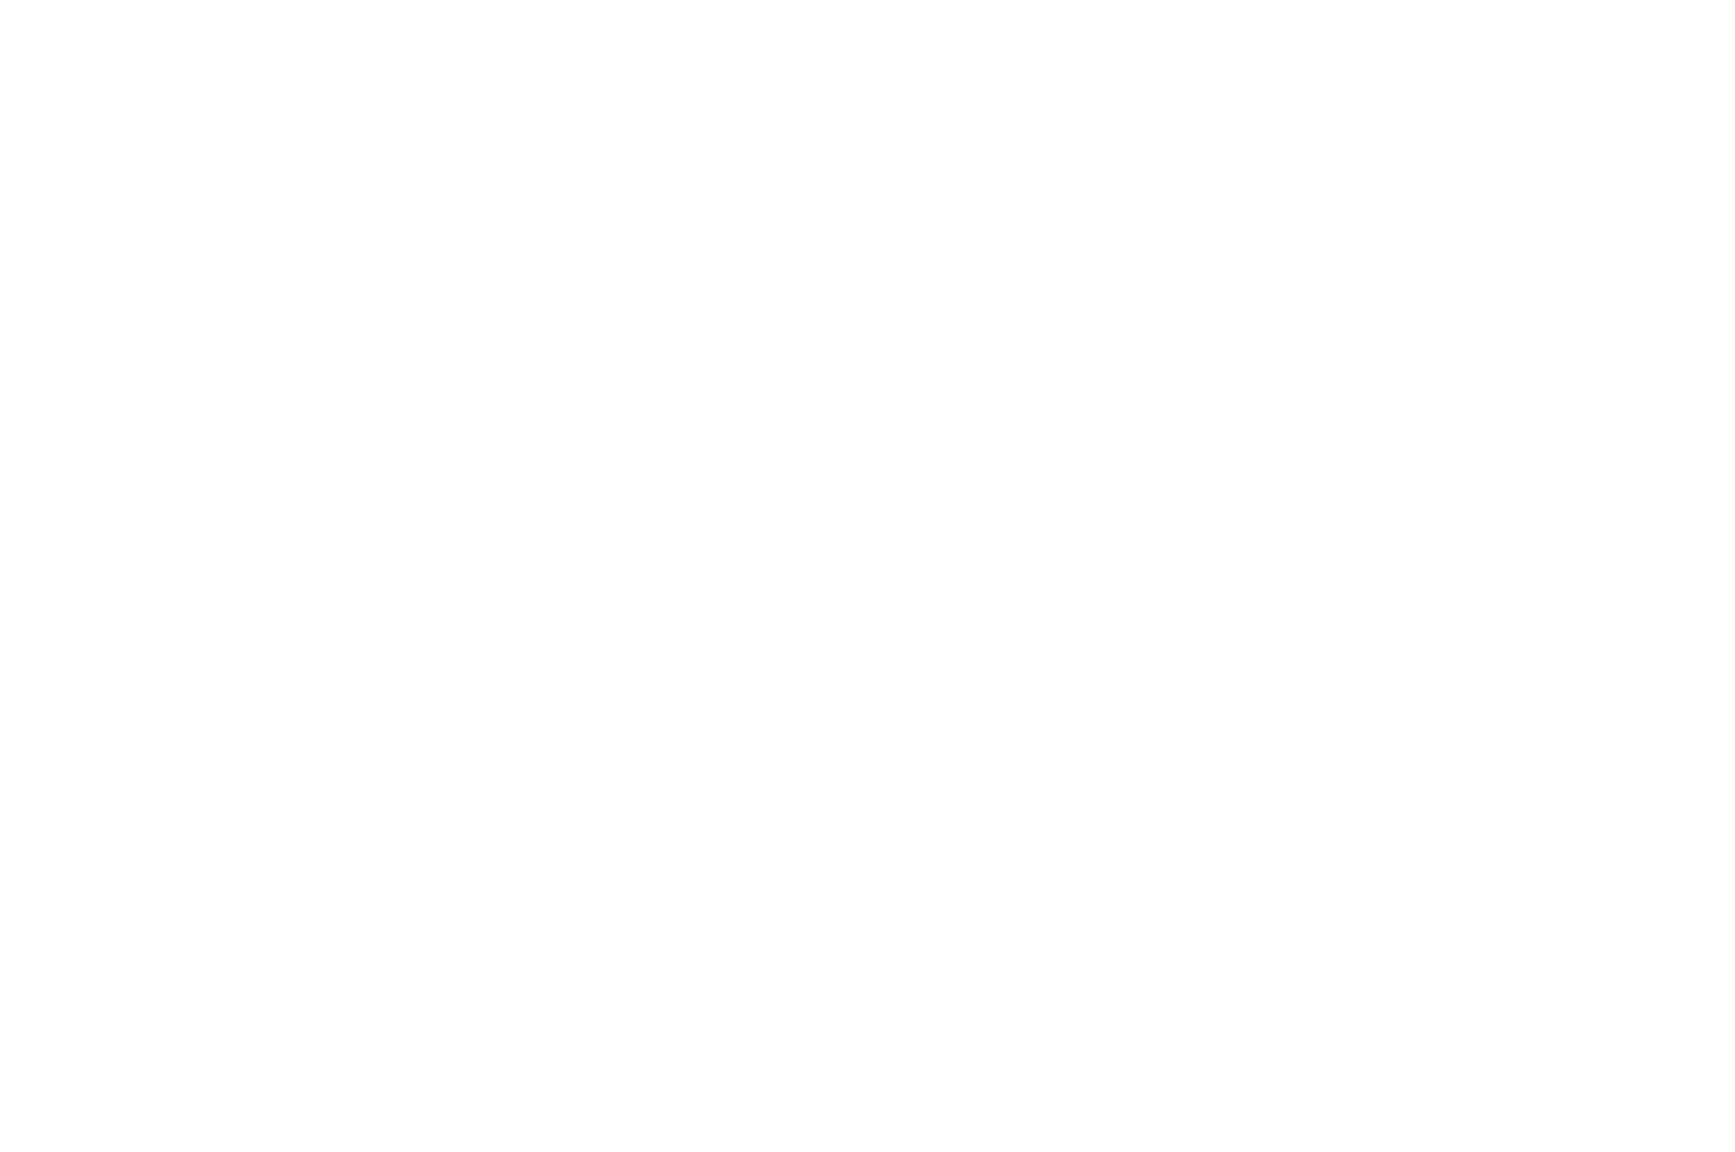 OFFICIAL COMPETITION - SITGES - 2018